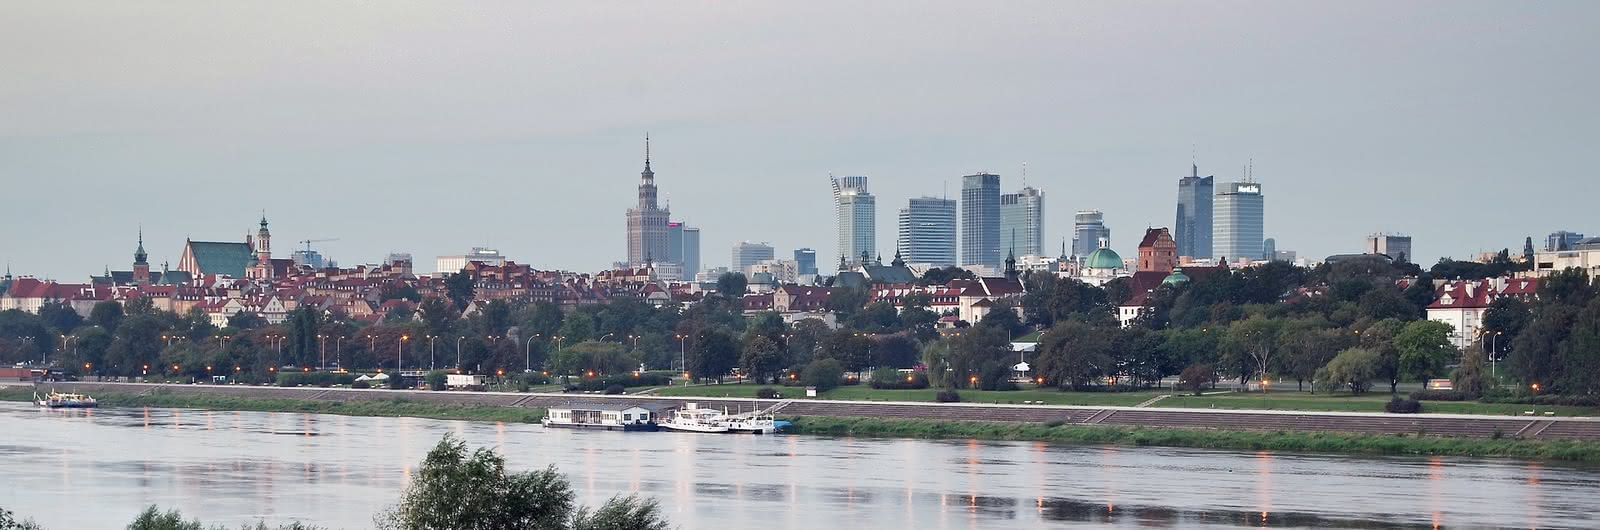 warsaw city header